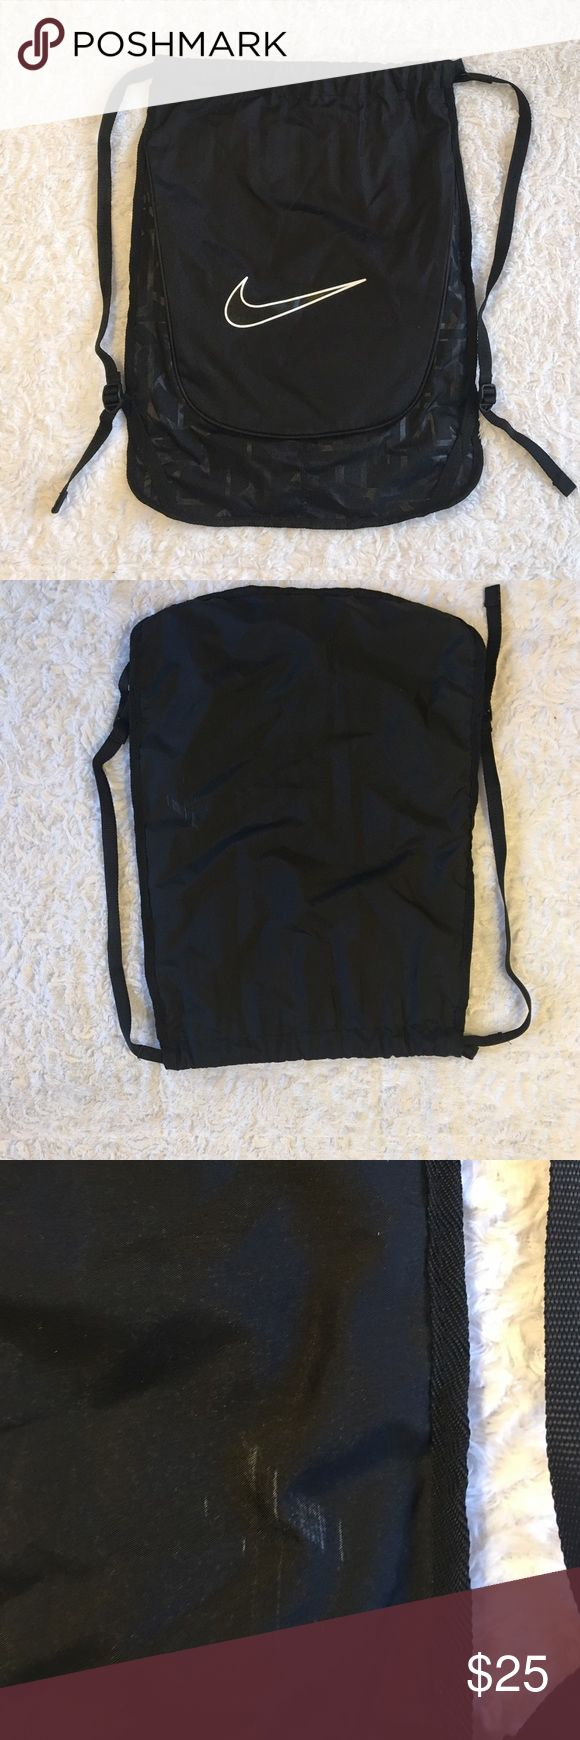 Nike Sports Gym Backpack Nike Backpack. Lightly Used. Small Scuff On Back. Over All Great Condition. Nike Bags Backpacks